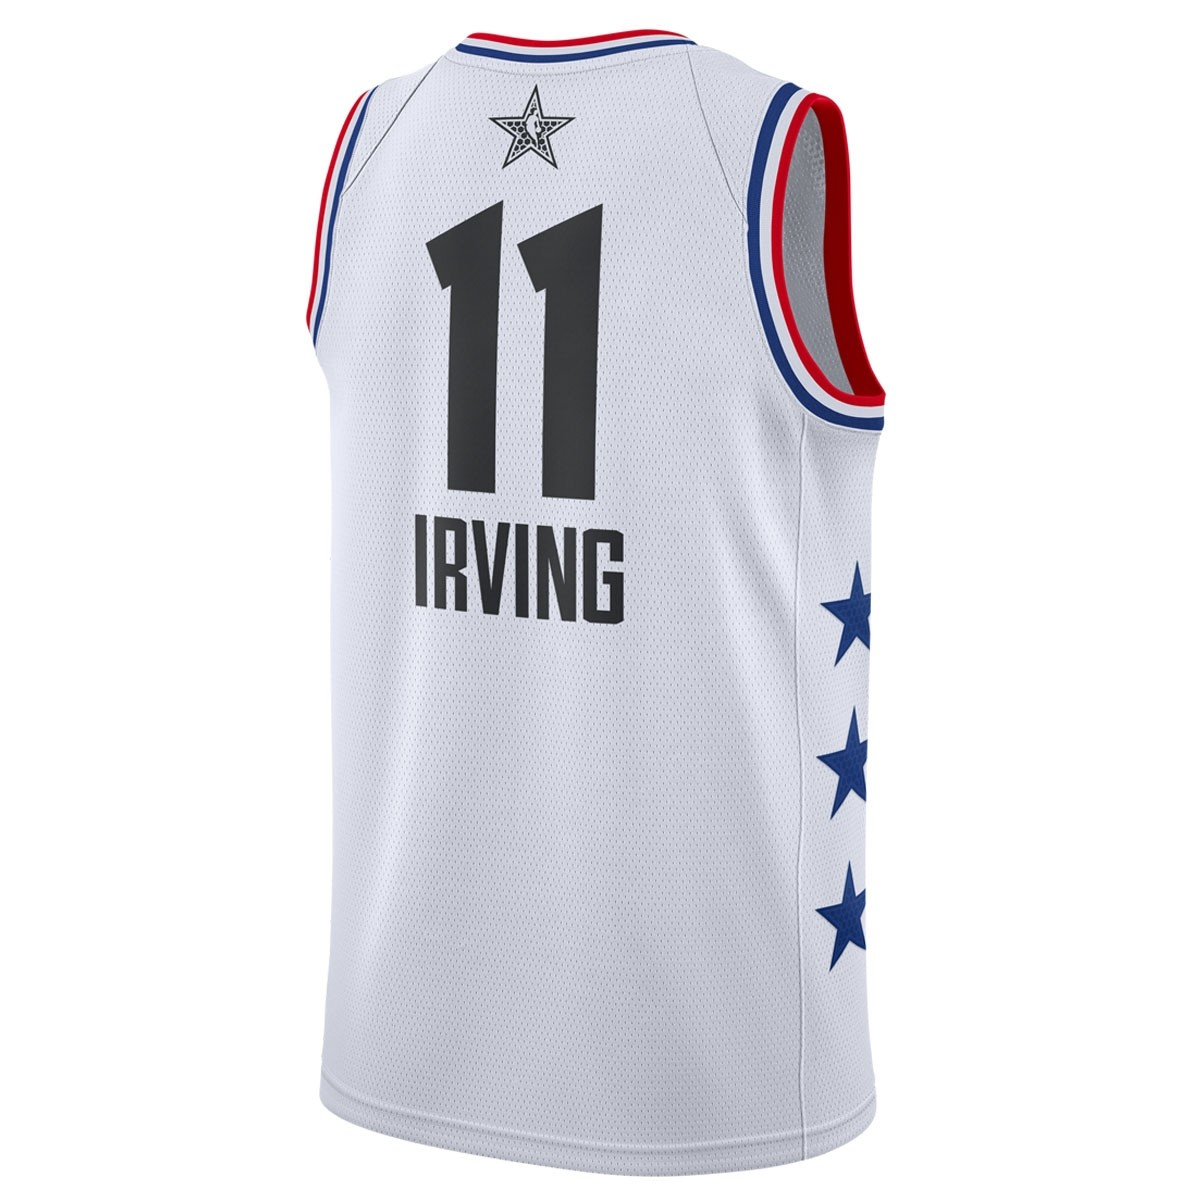 Jordan Swigman Jersey All-Star Irving edition 'White' AQ7297-105